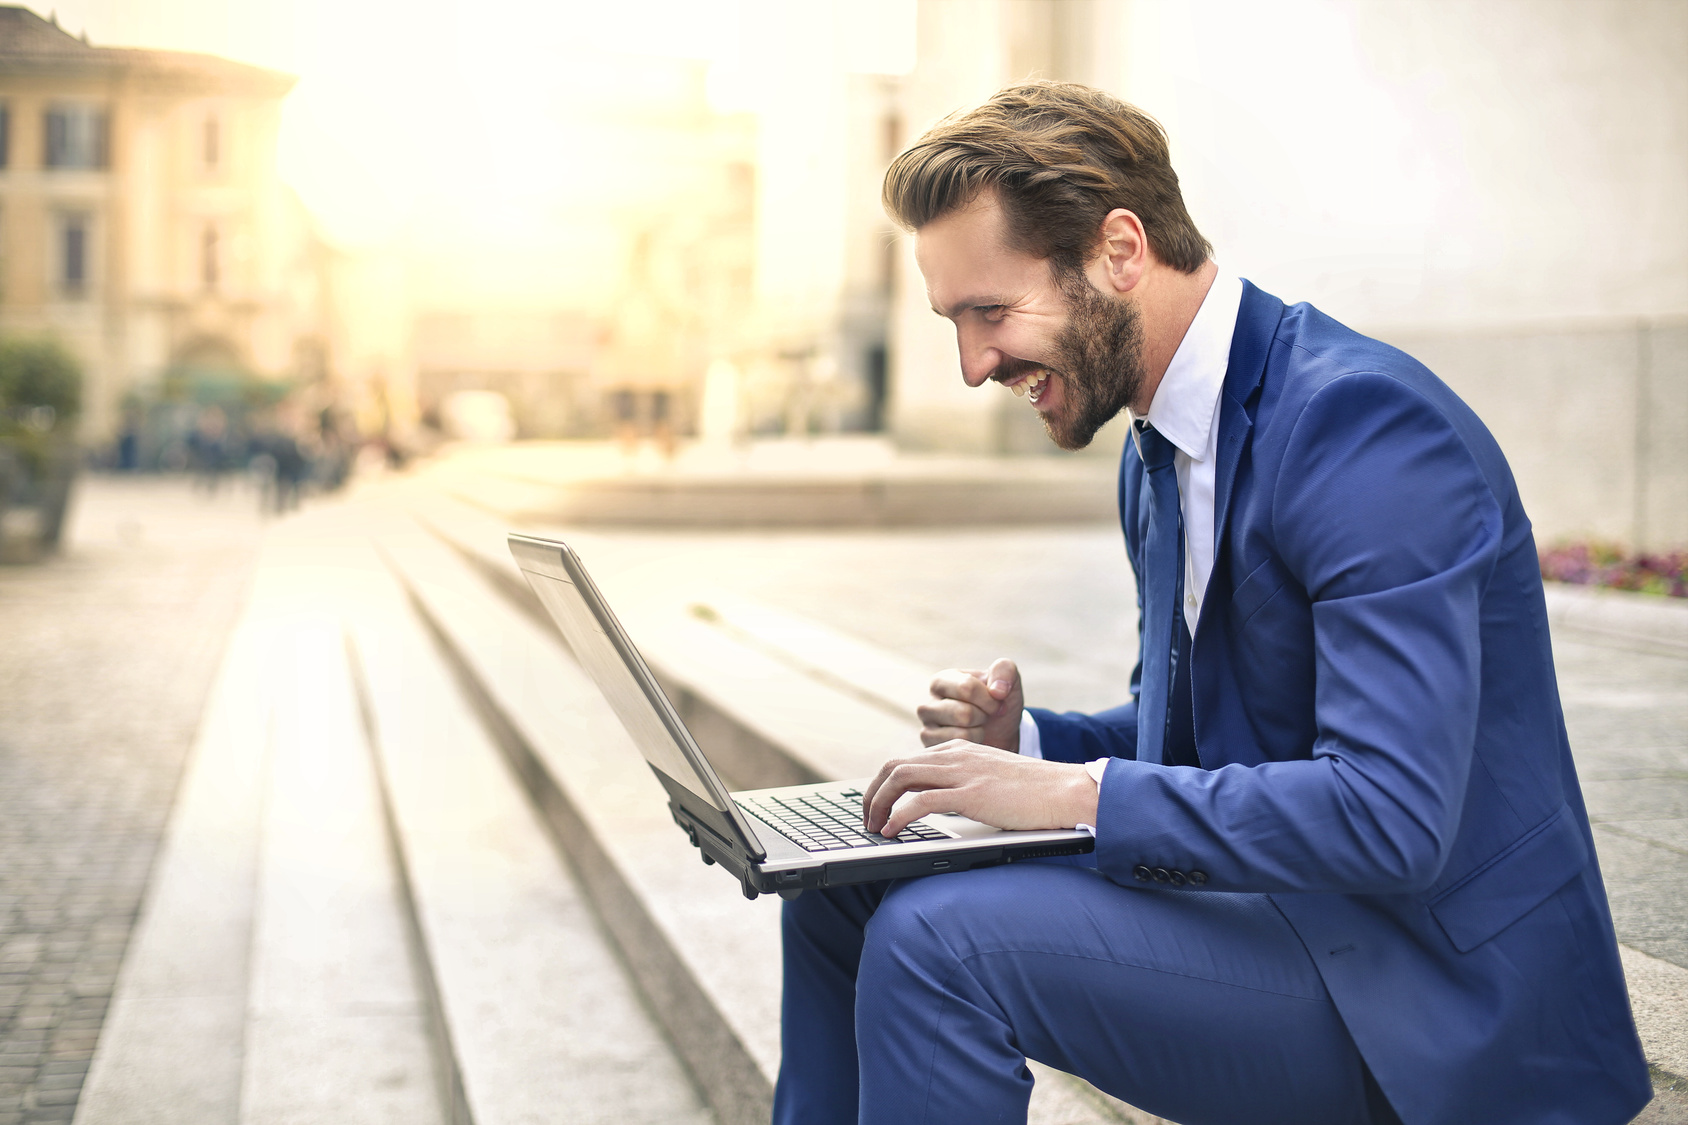 Handsome businessman using a laptop